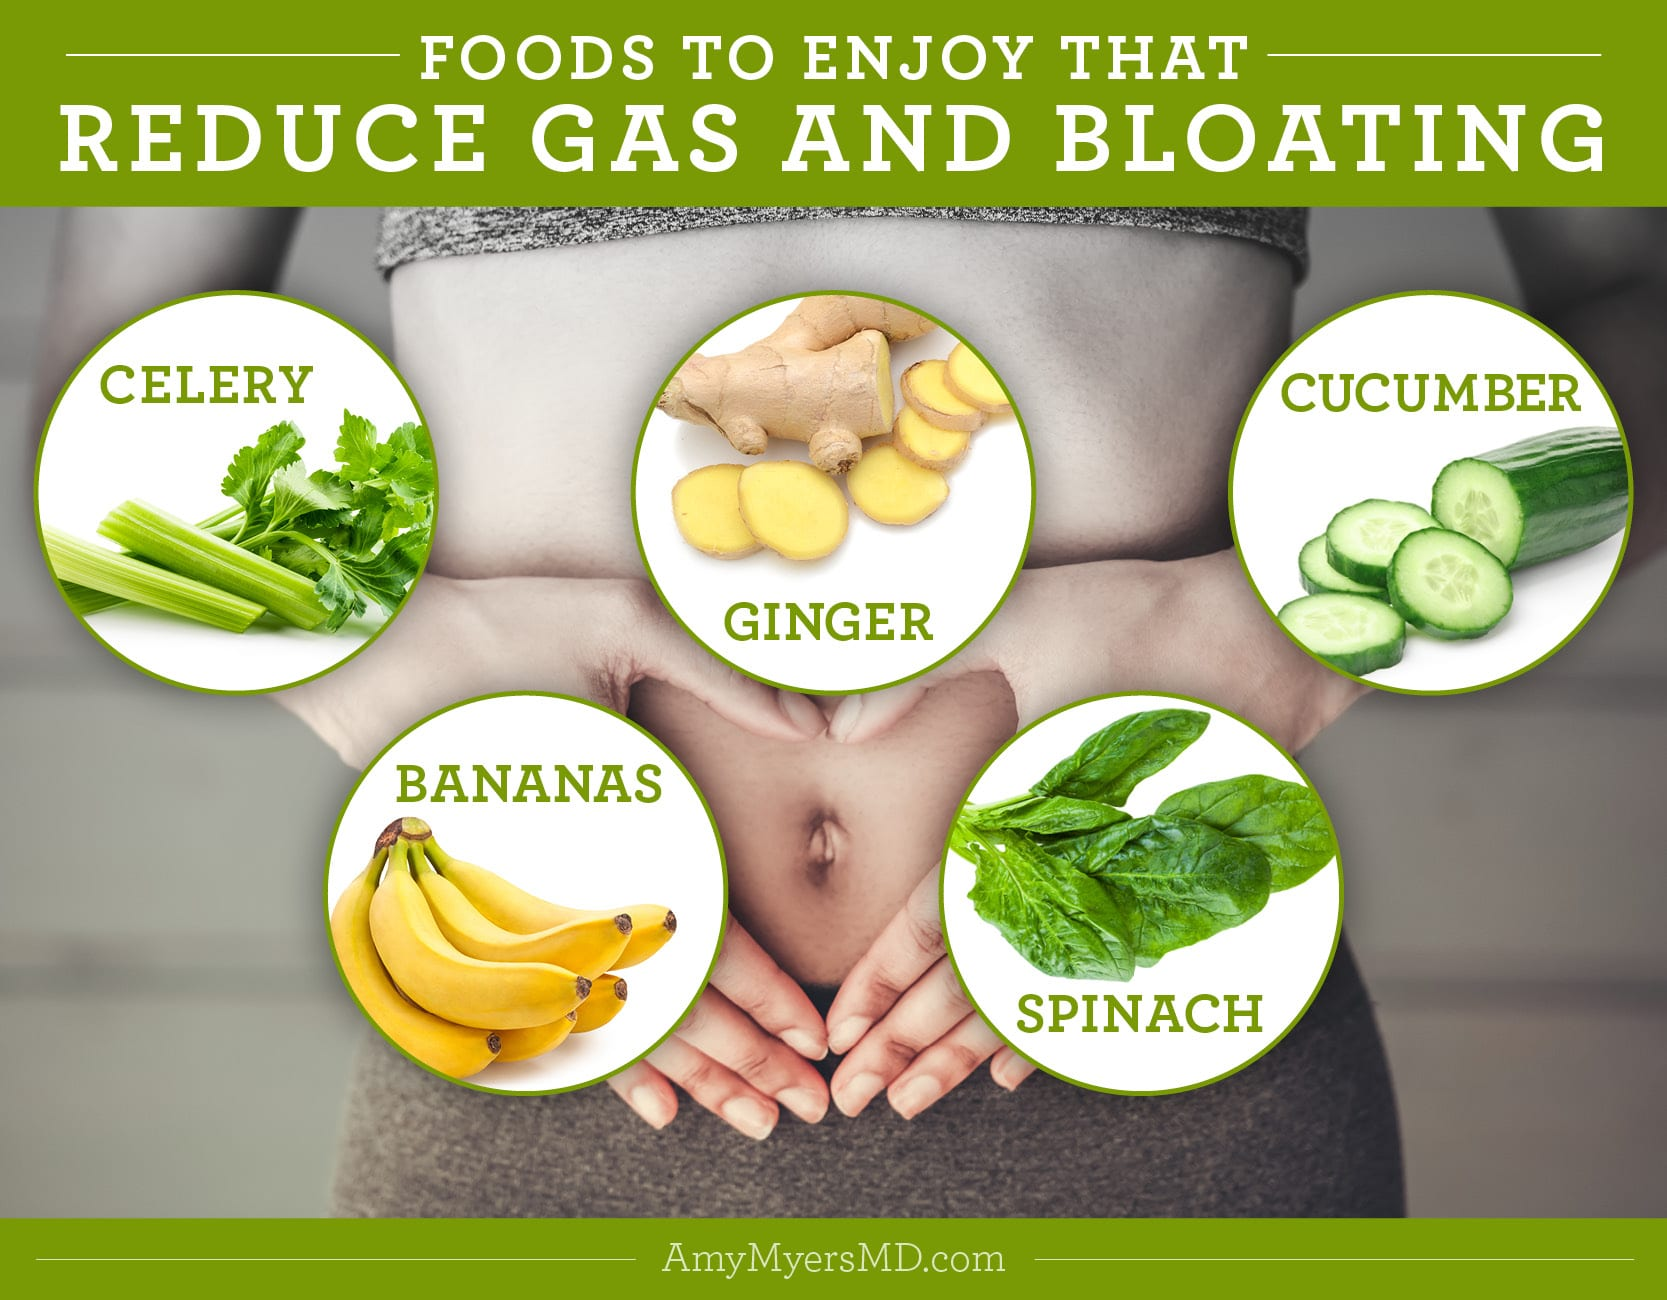 foods to enjoy that reduce gas and bloating